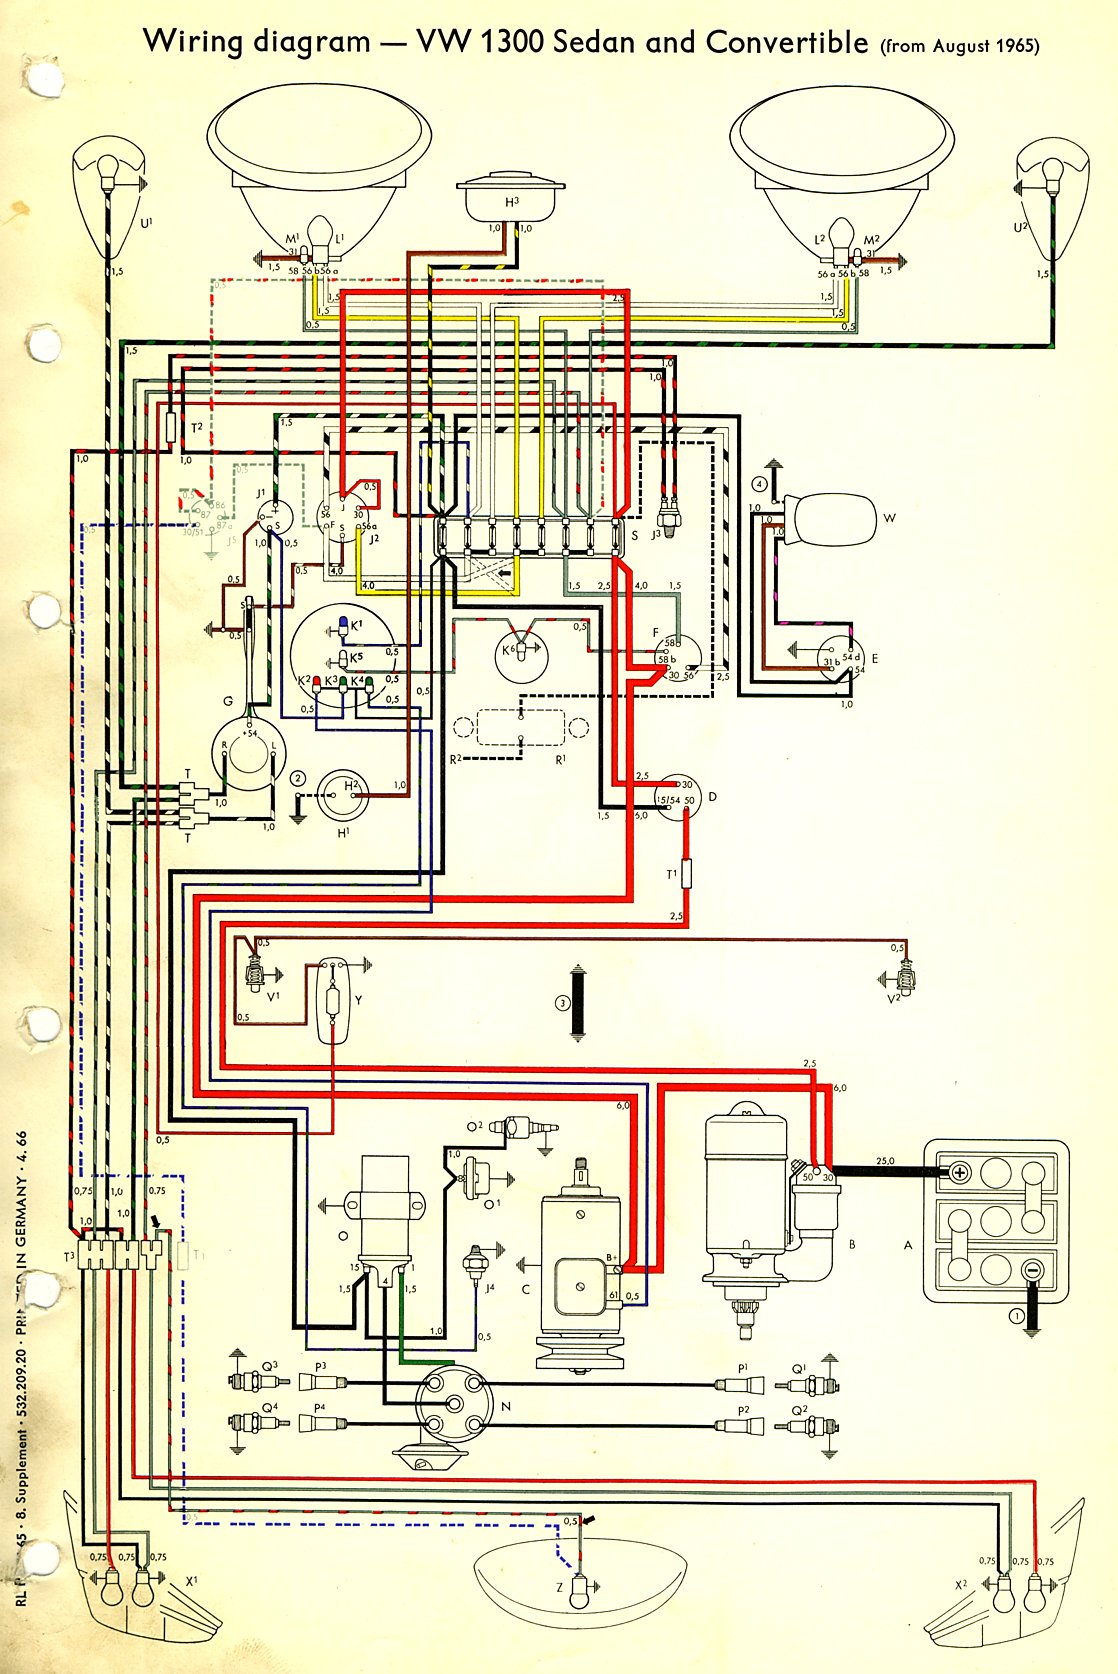 Thesamba type 1 wiring diagrams 1966 swarovskicordoba Images